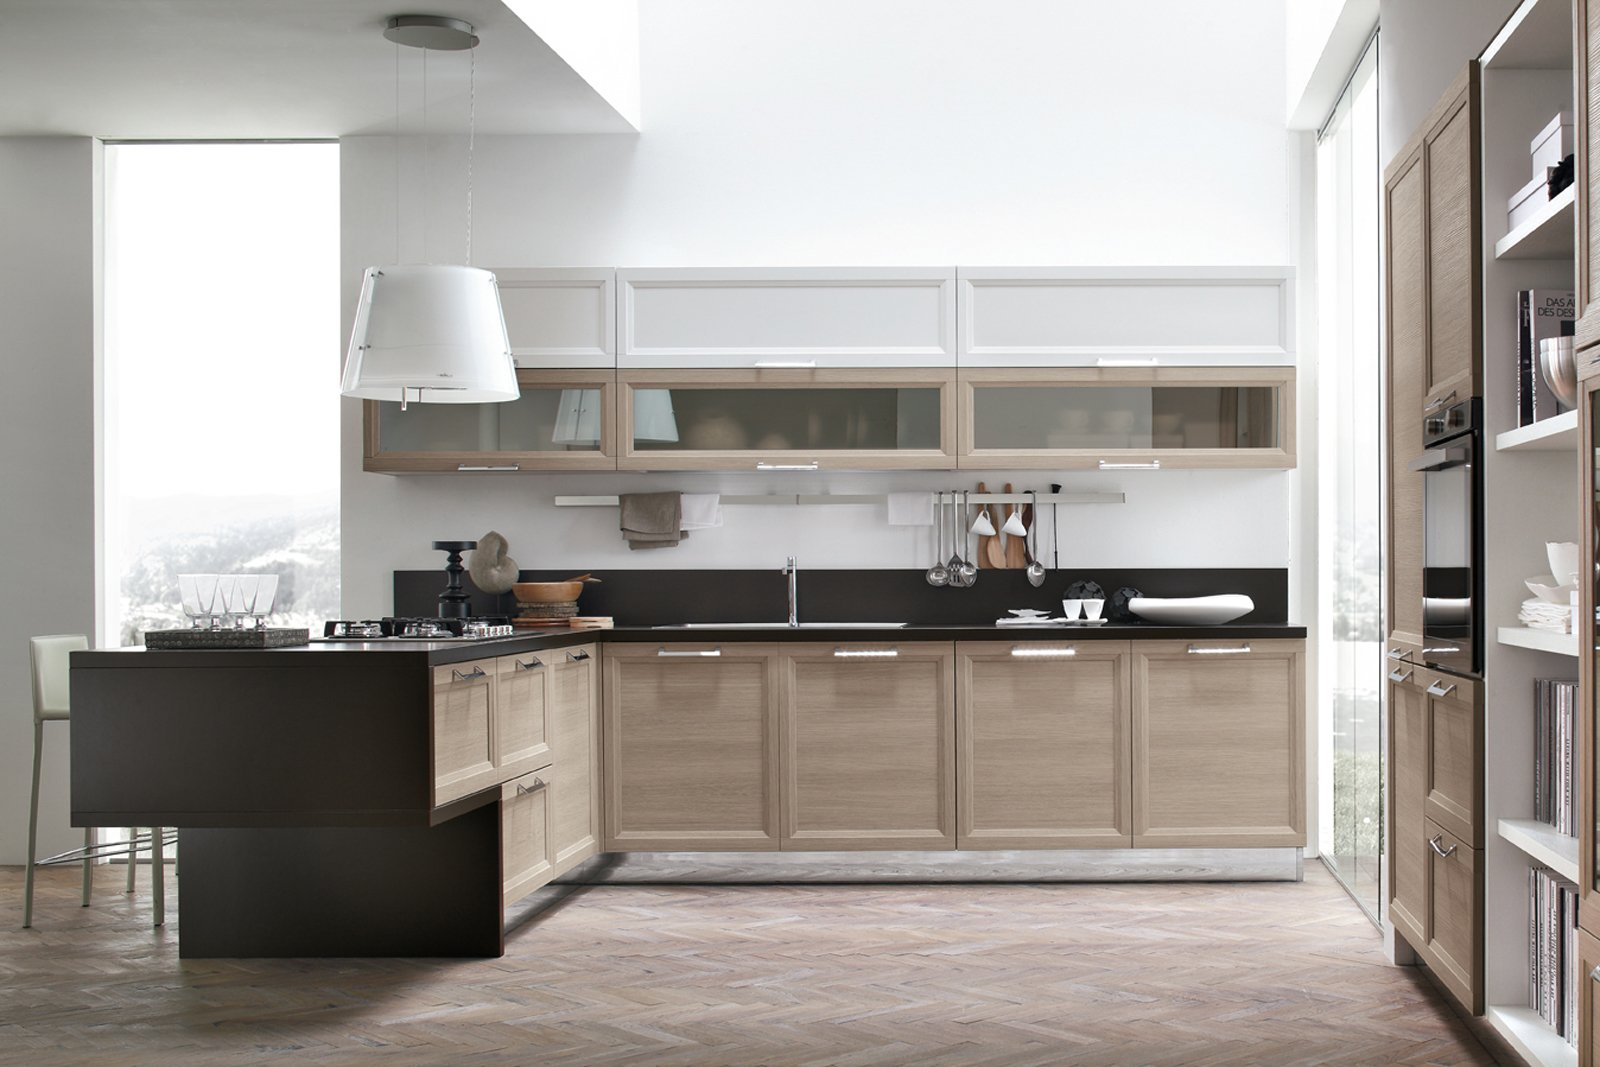 Stosa Cucine Cucine Classiche Moderne Contemporanee  Share The Knownledge